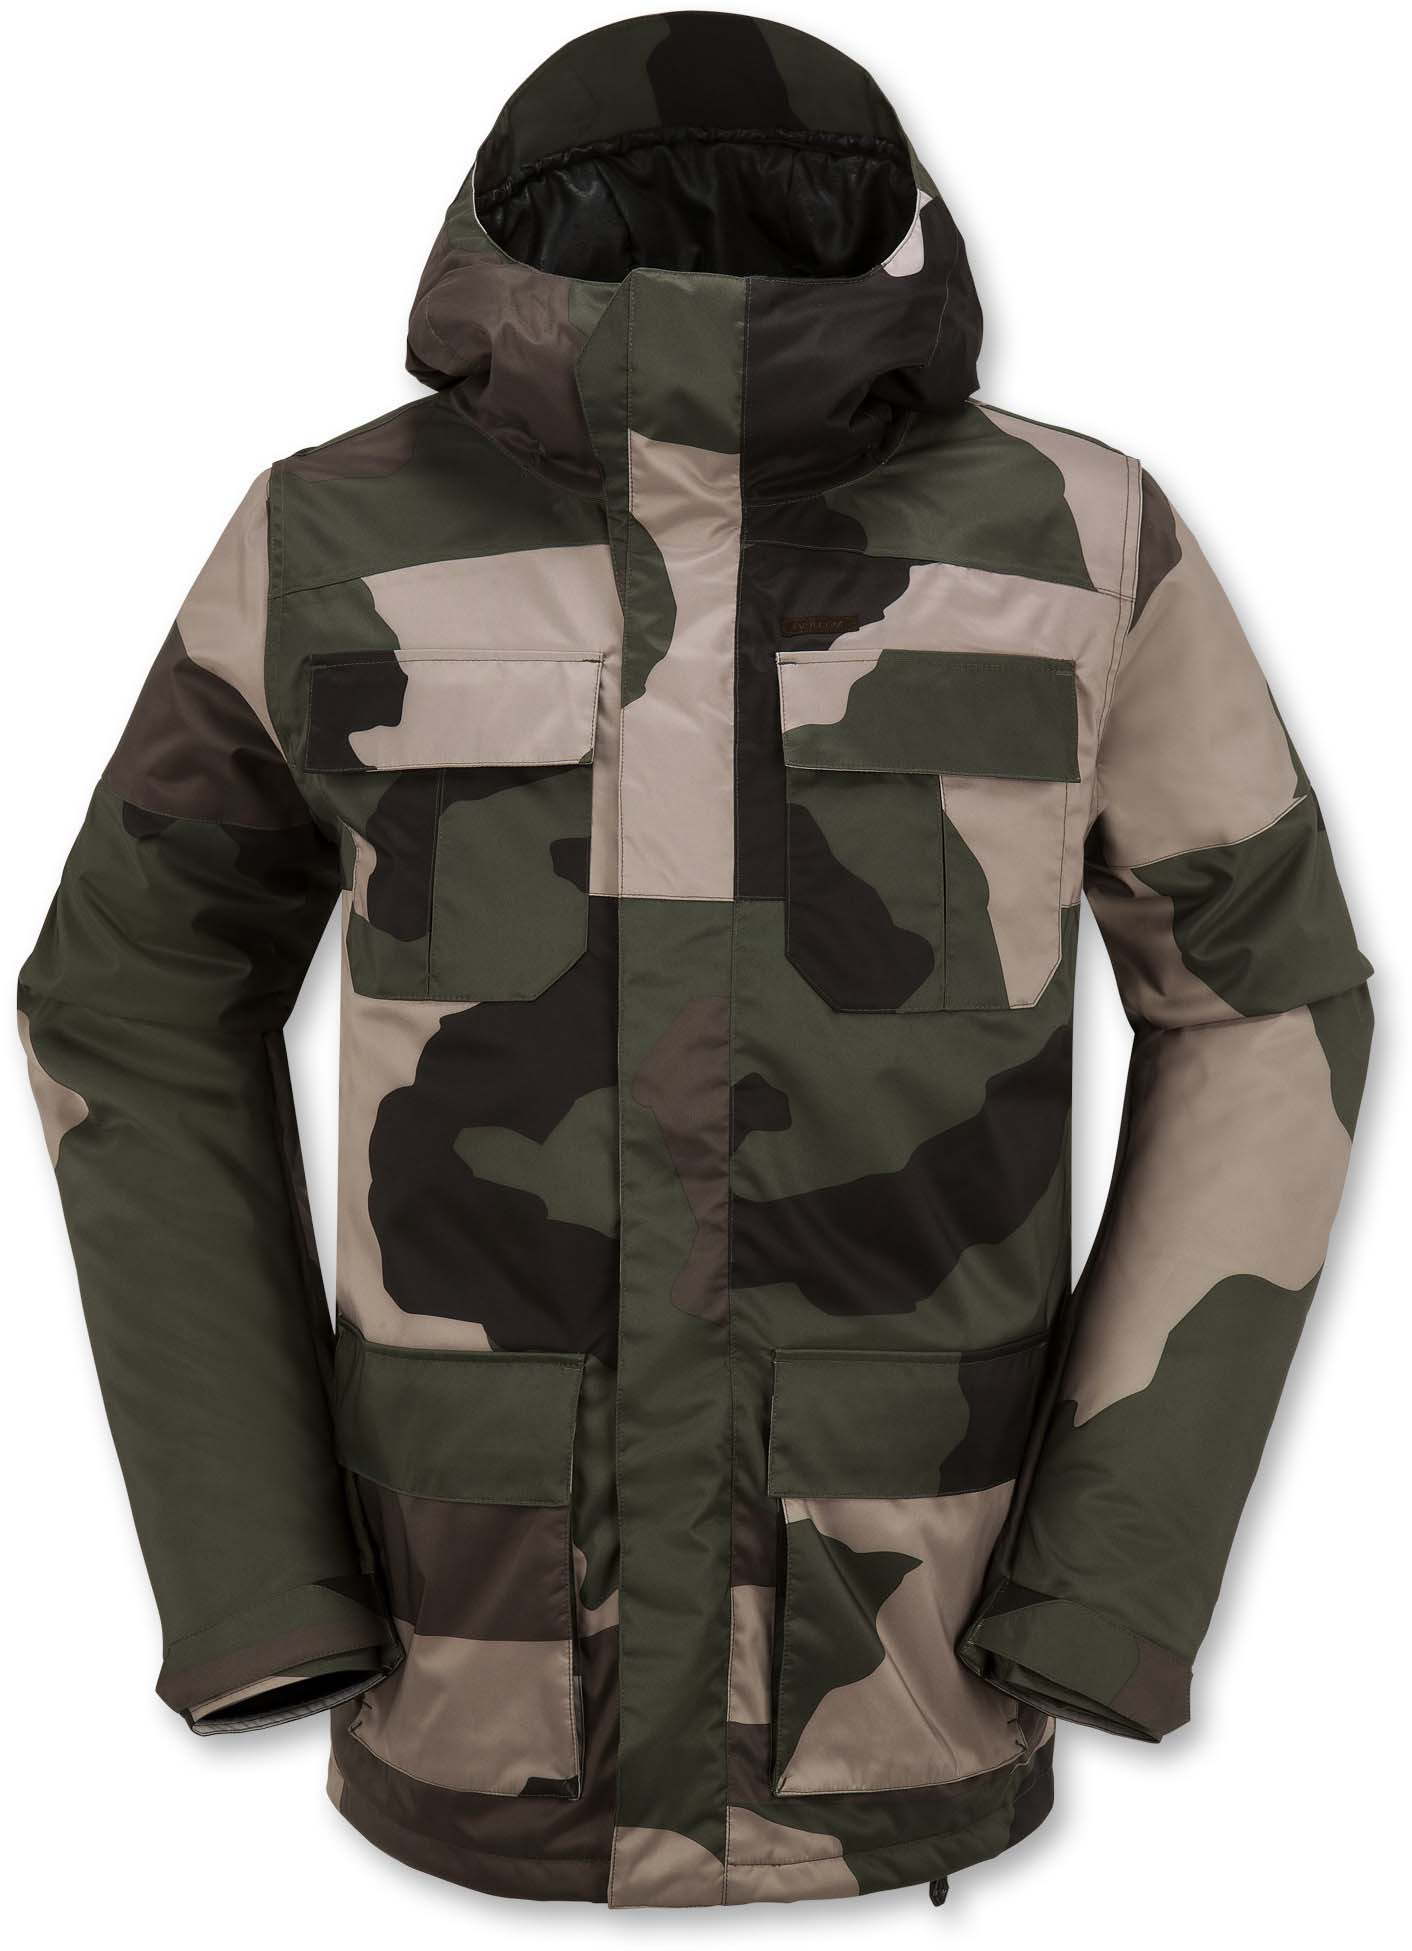 image volcom-alternate-insulated-jacket-camo-jpg